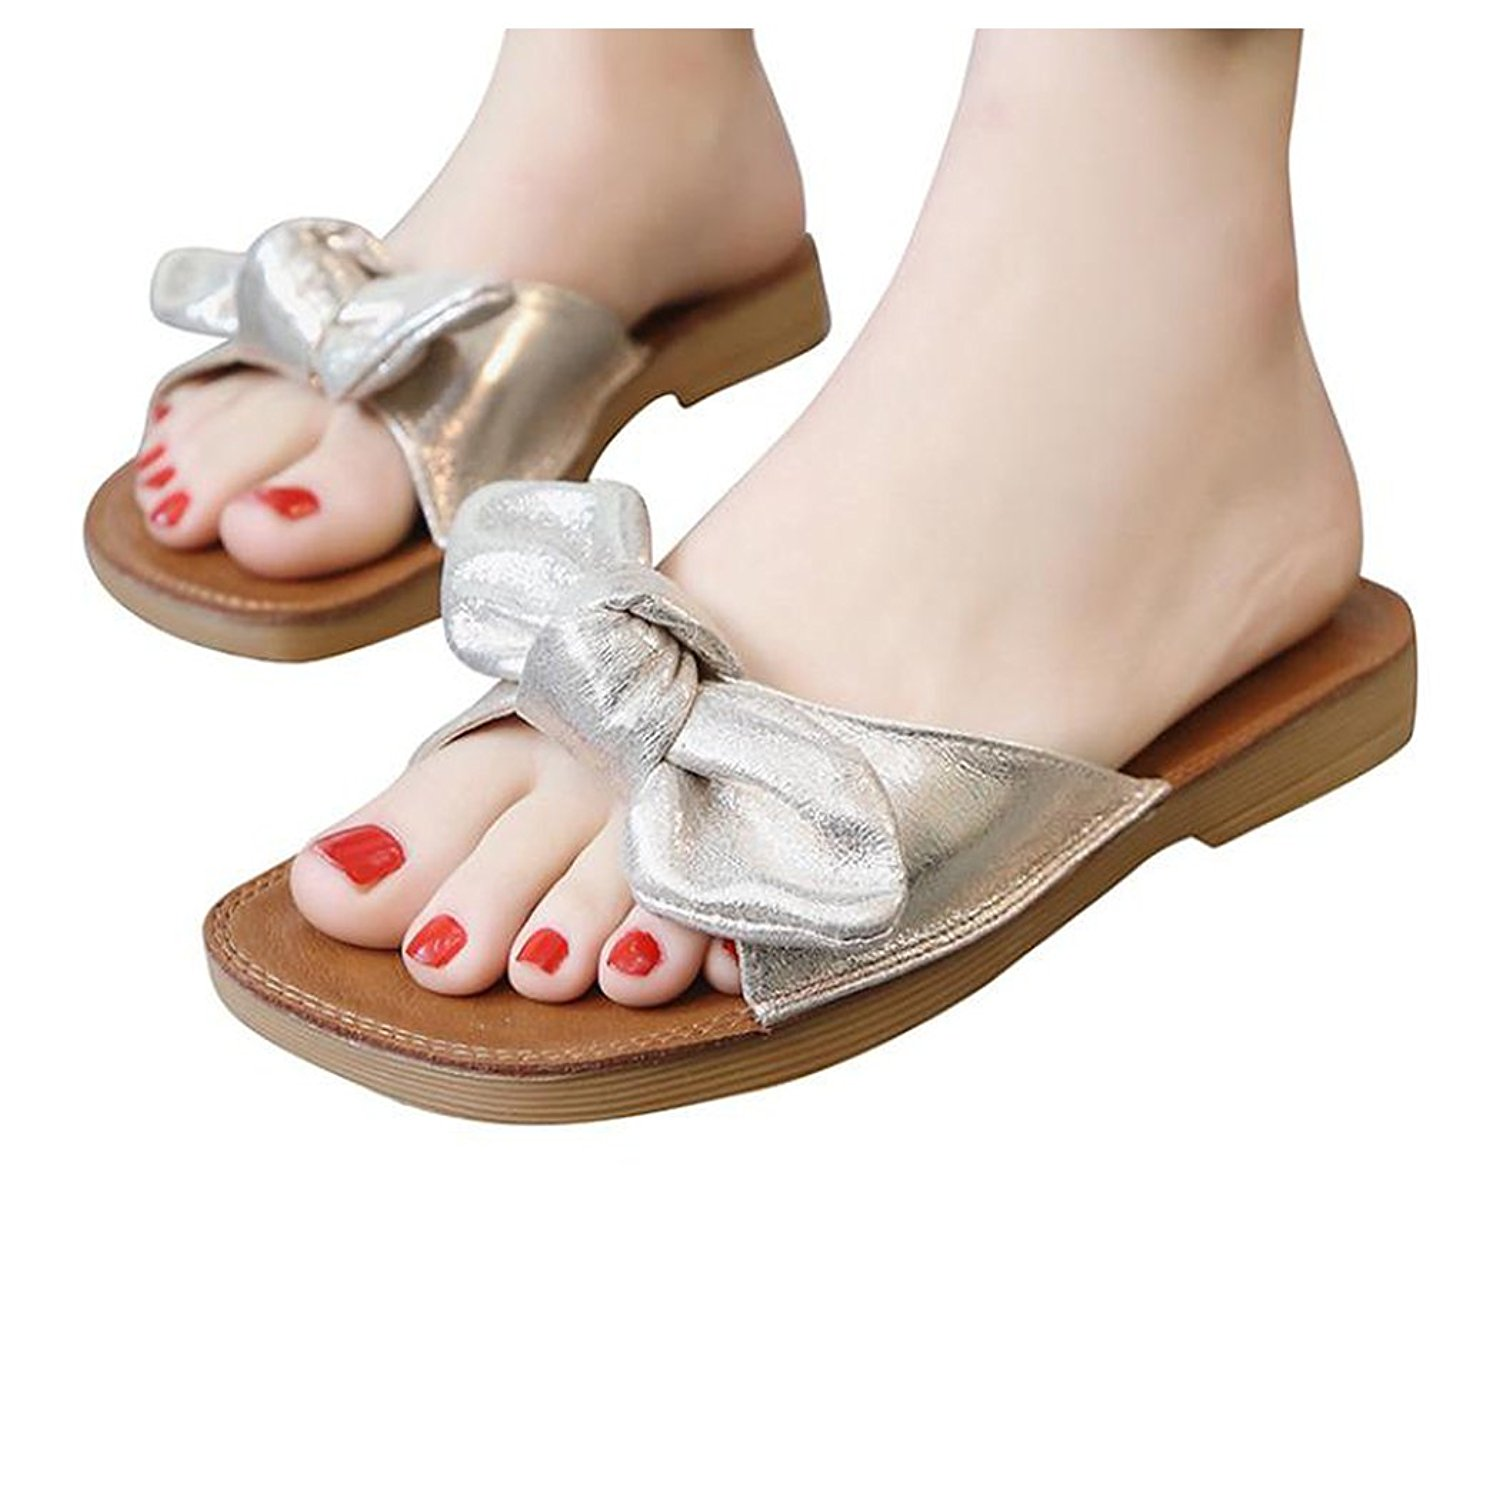 3ed8036e60ae Get Quotations · Inkach Womens Wedge Sandals ❤ Fashion Summer Chunky Heeled  Wedge Sandals Thong Slippers Flip-